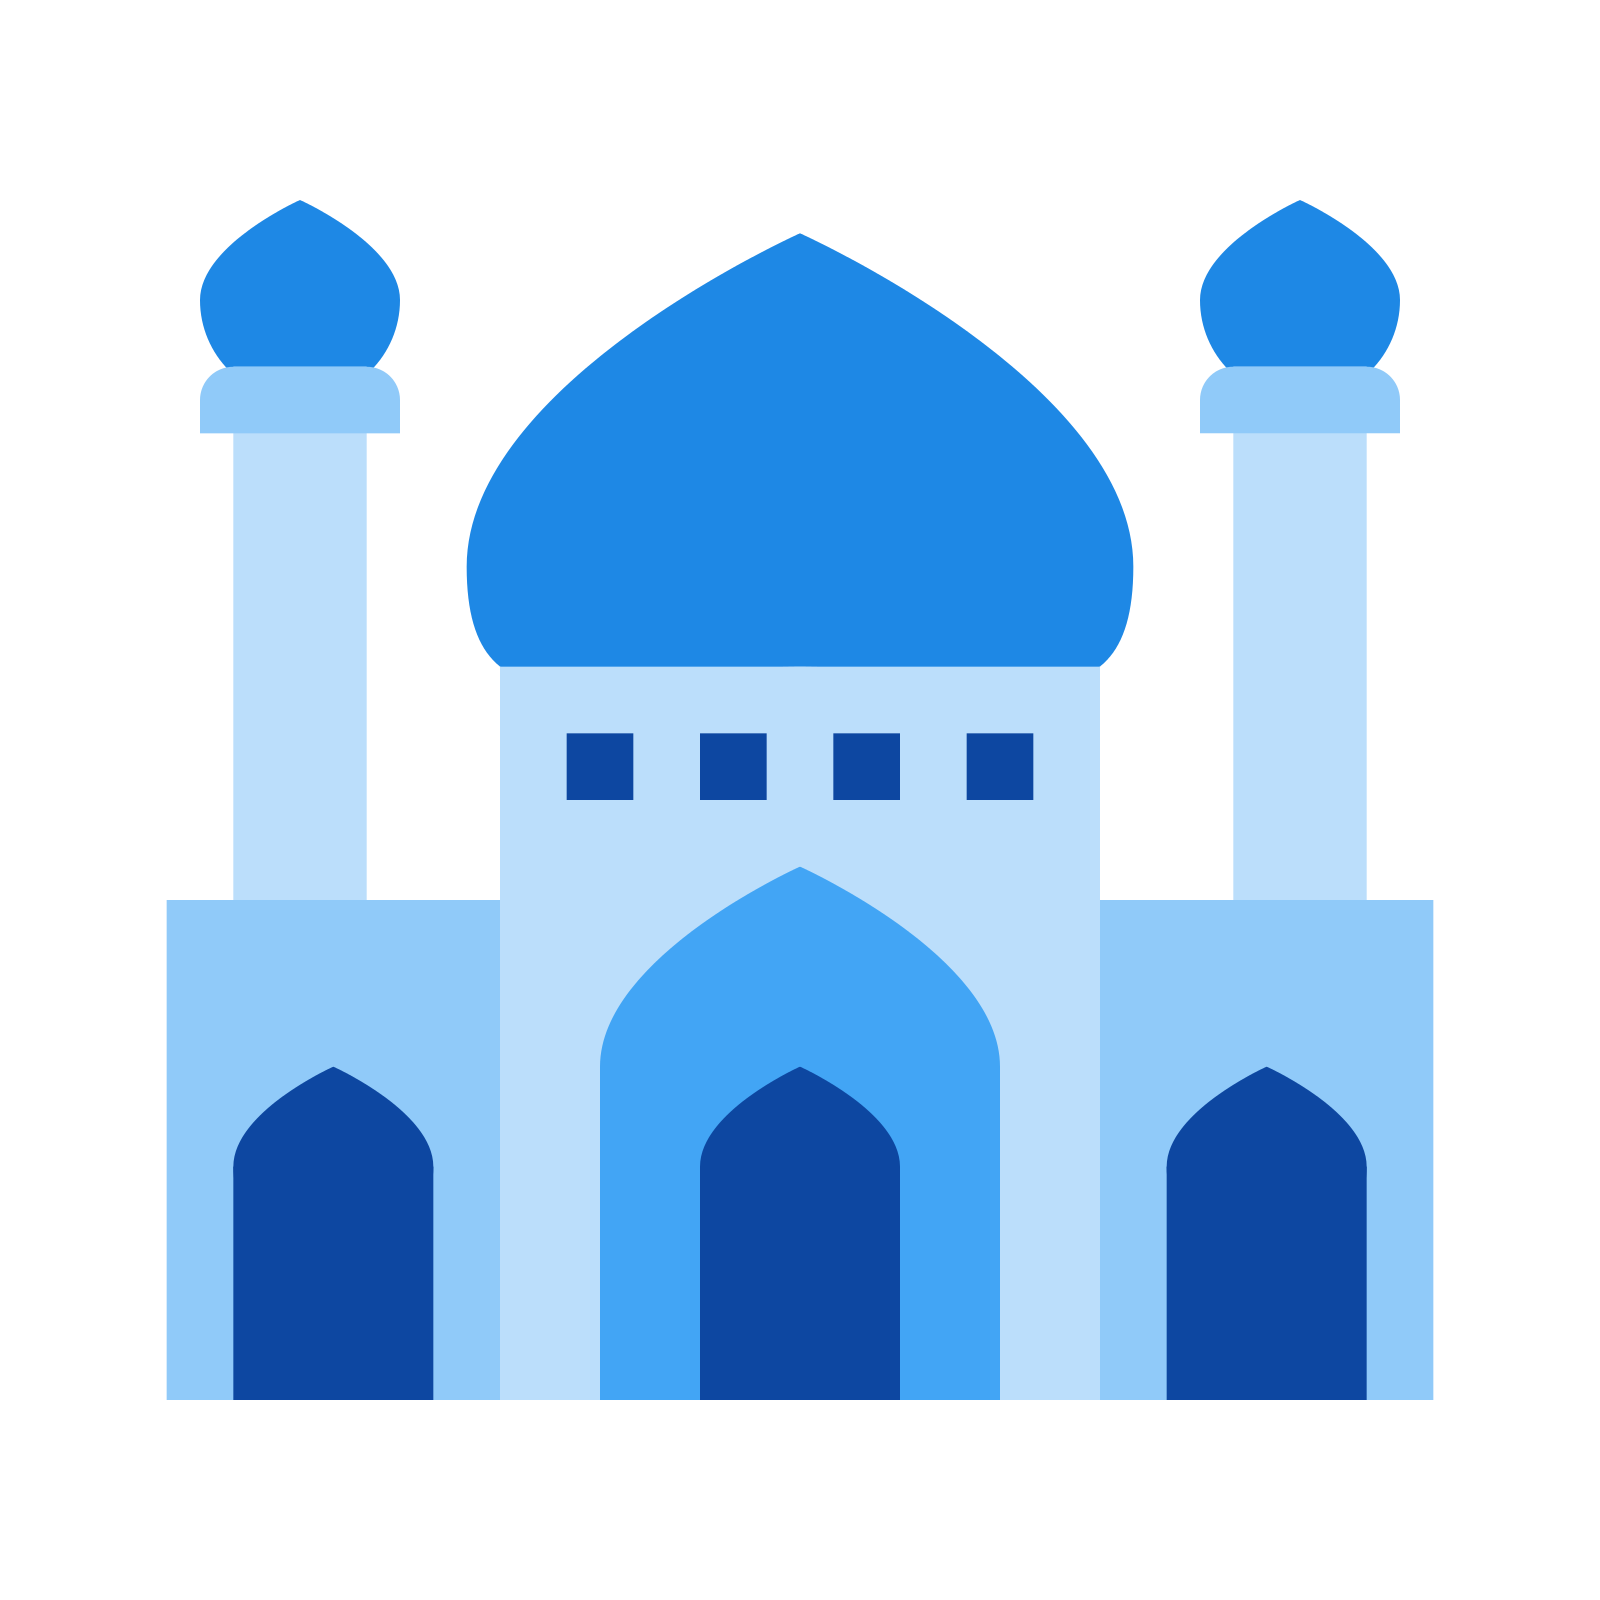 Mosque clipart icon, Mosque icon Transparent FREE for.